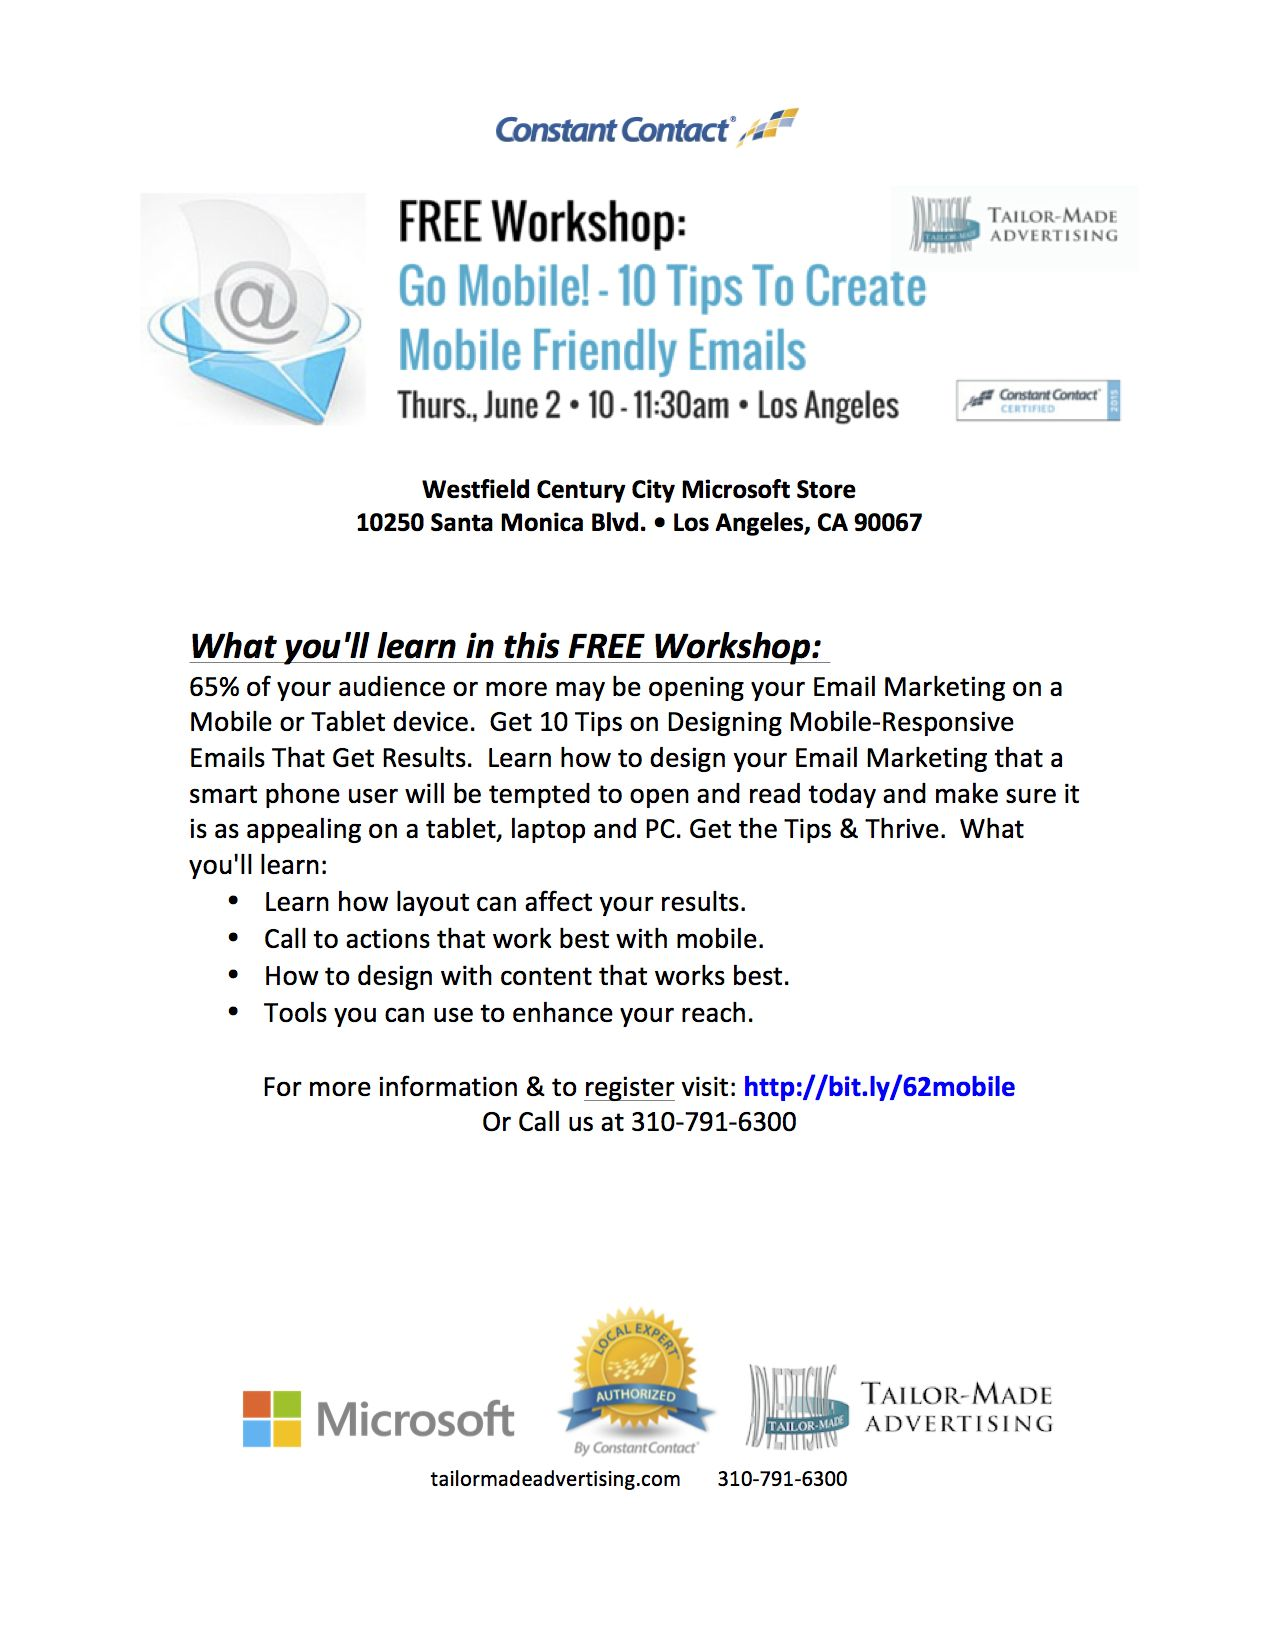 #MobileMarketing #Workshop in #CenturyCity on 6/2. Come and learn ways to make your emails mobile friendly